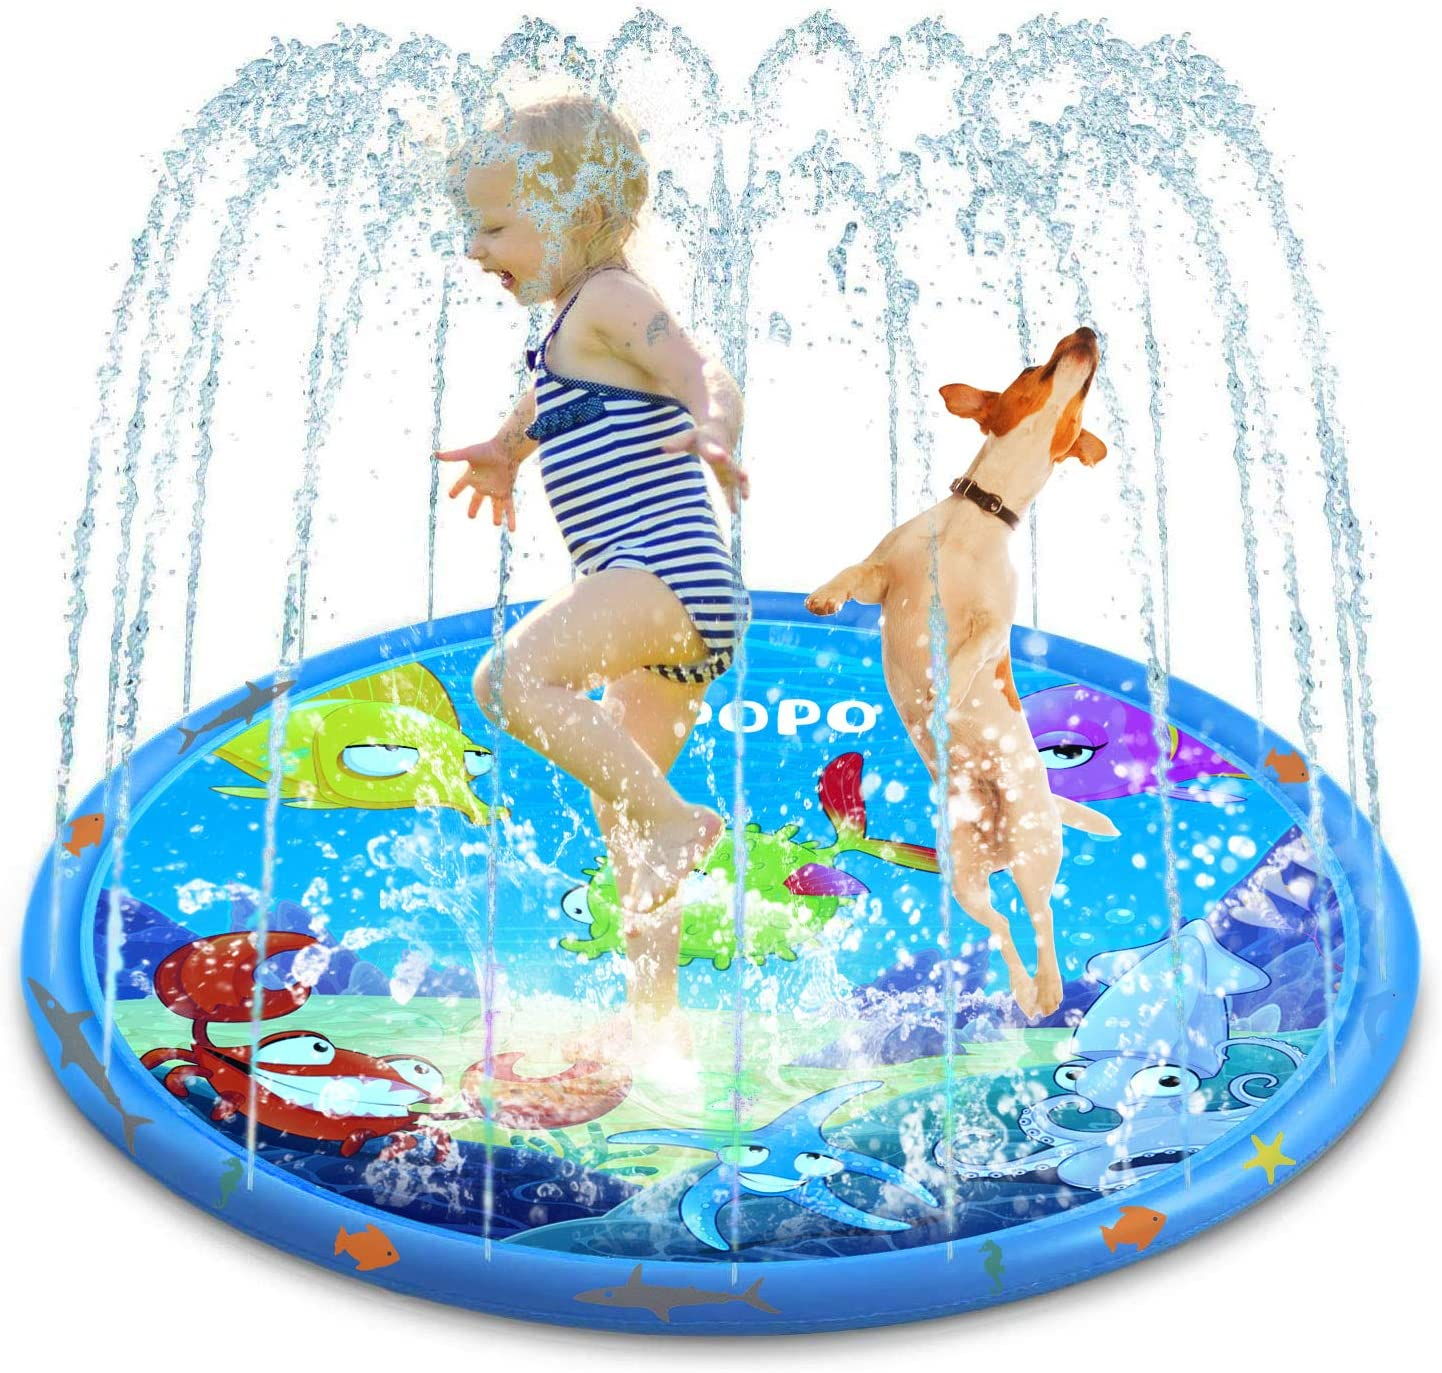 ASPPOPO Sprinklers for Kids Water Play for Kids Outside 68'' Splash Play Mat Summer Toys Water Sprinkler Toys for Kids Outdoor Backyard Toys